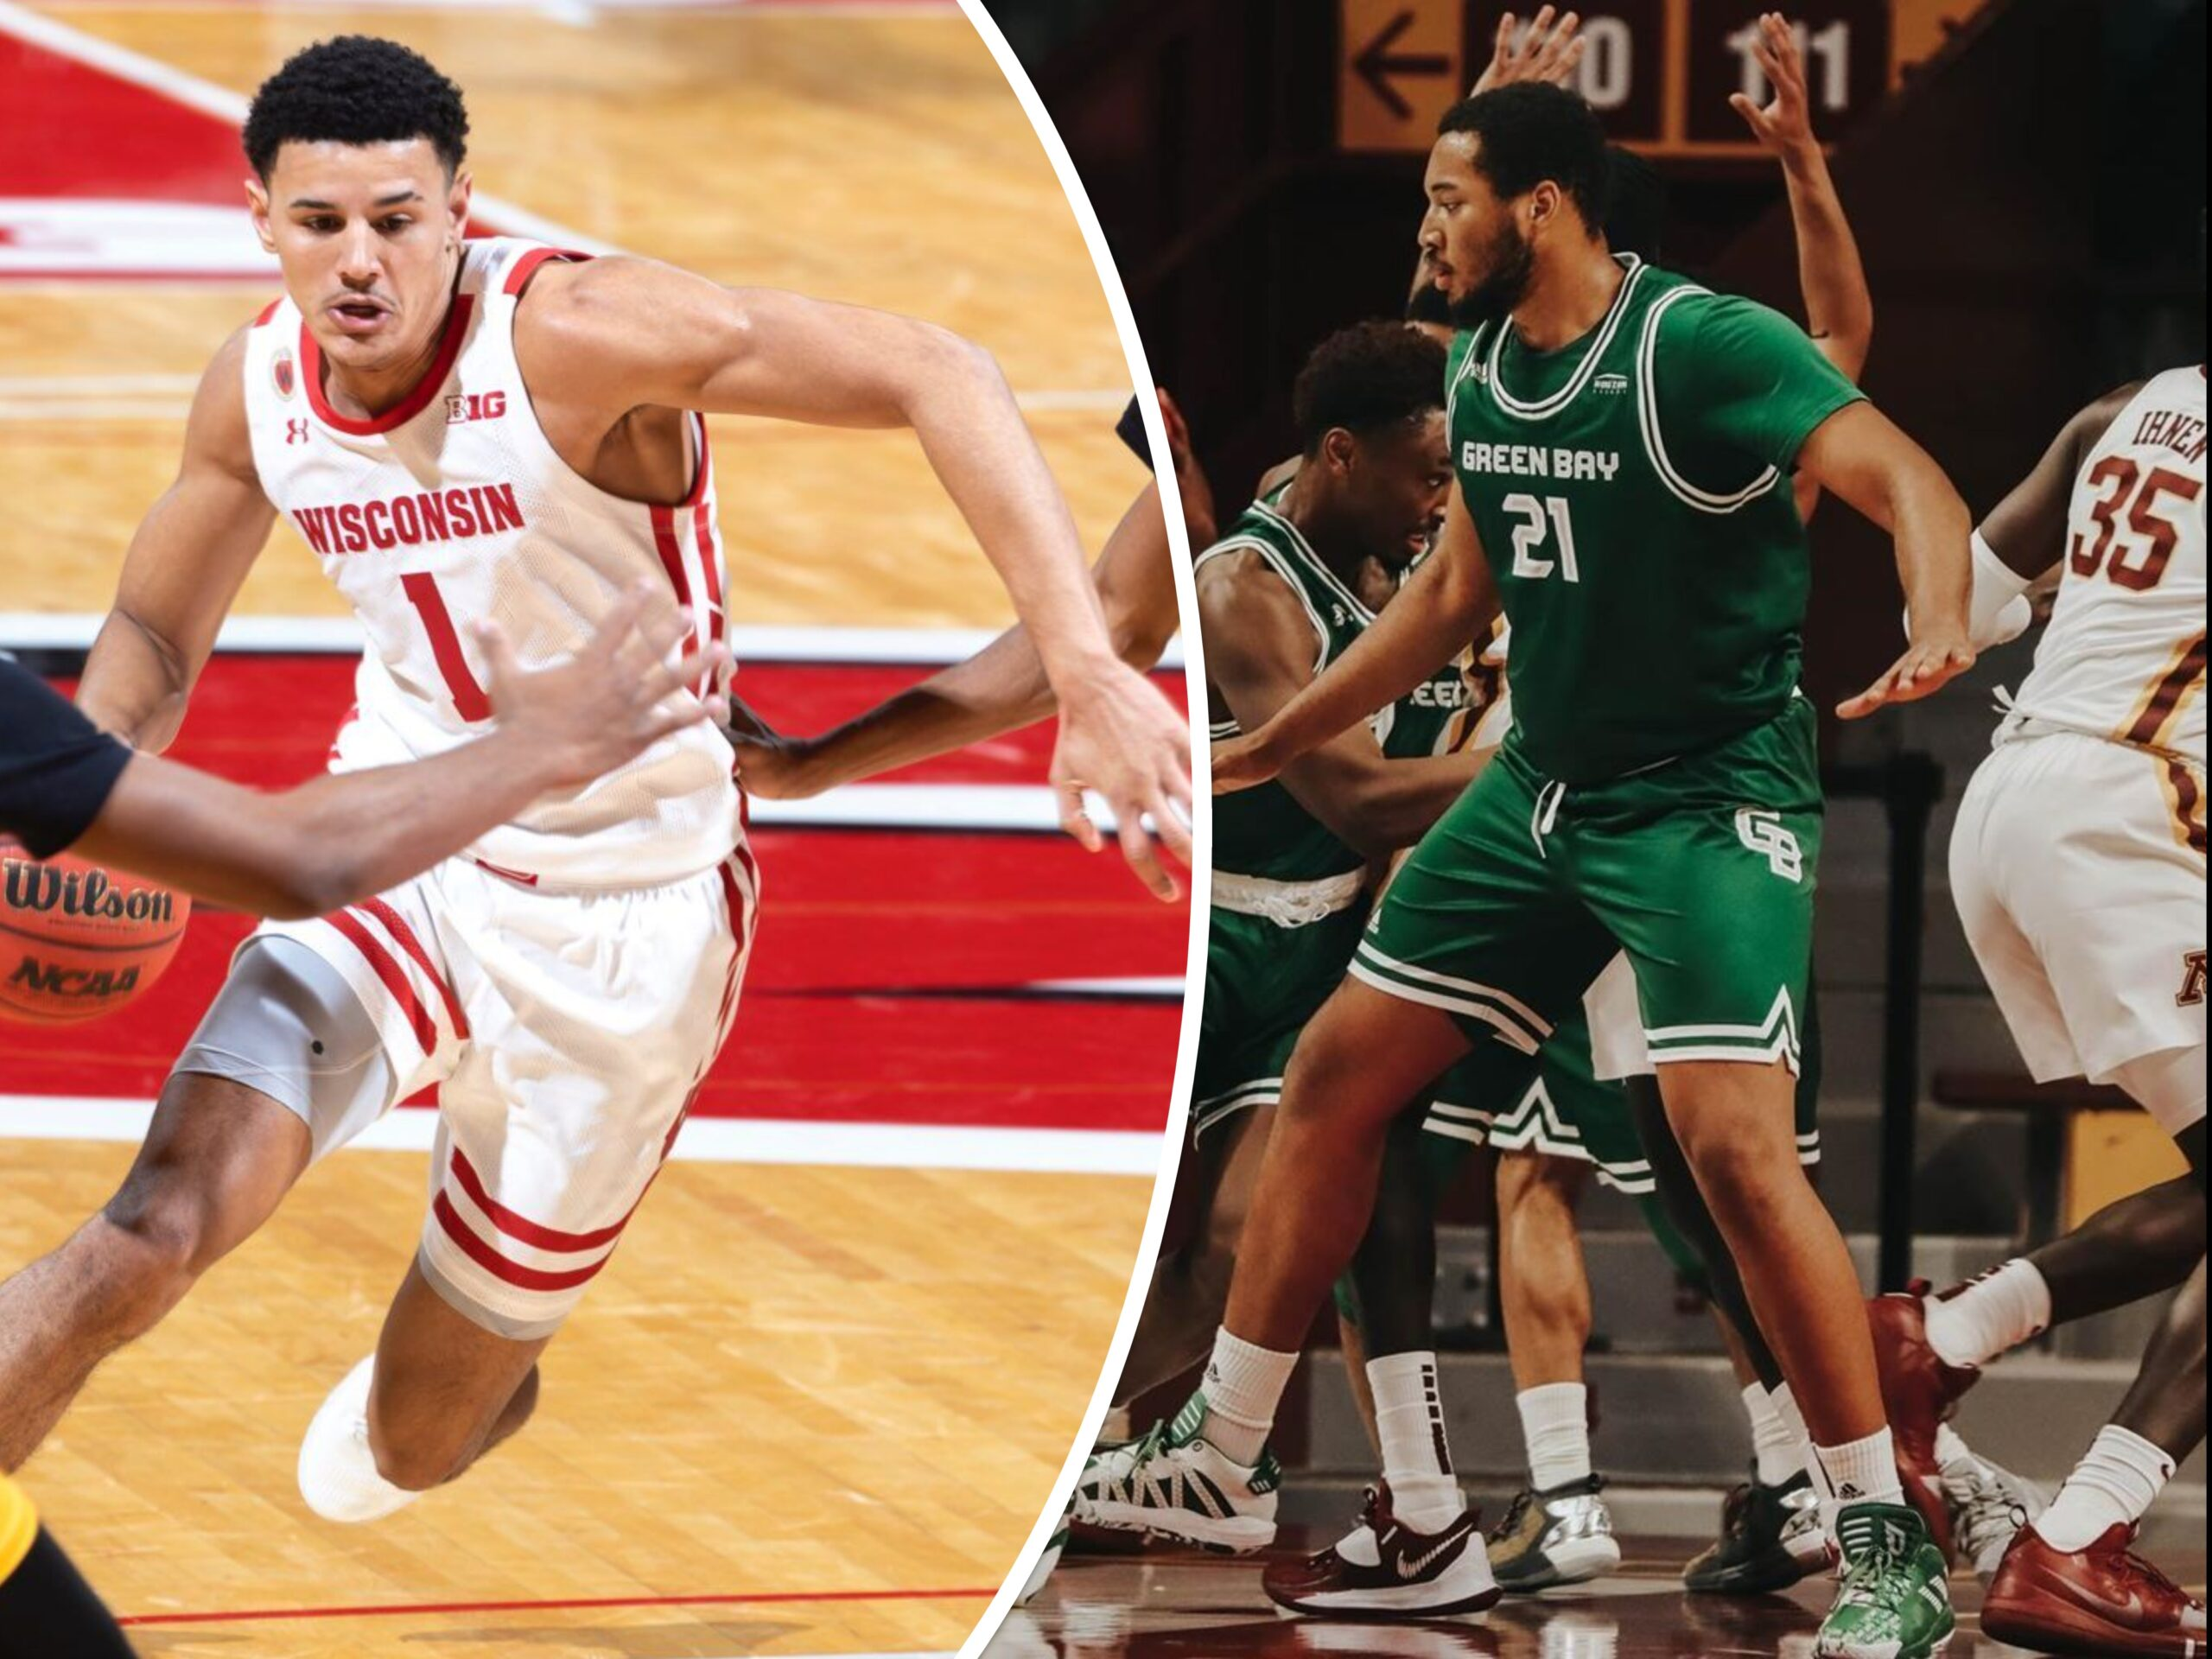 La Crosse Central grads — already playing as true freshmen — could meet Tuesday, as Badgers host UW-GB